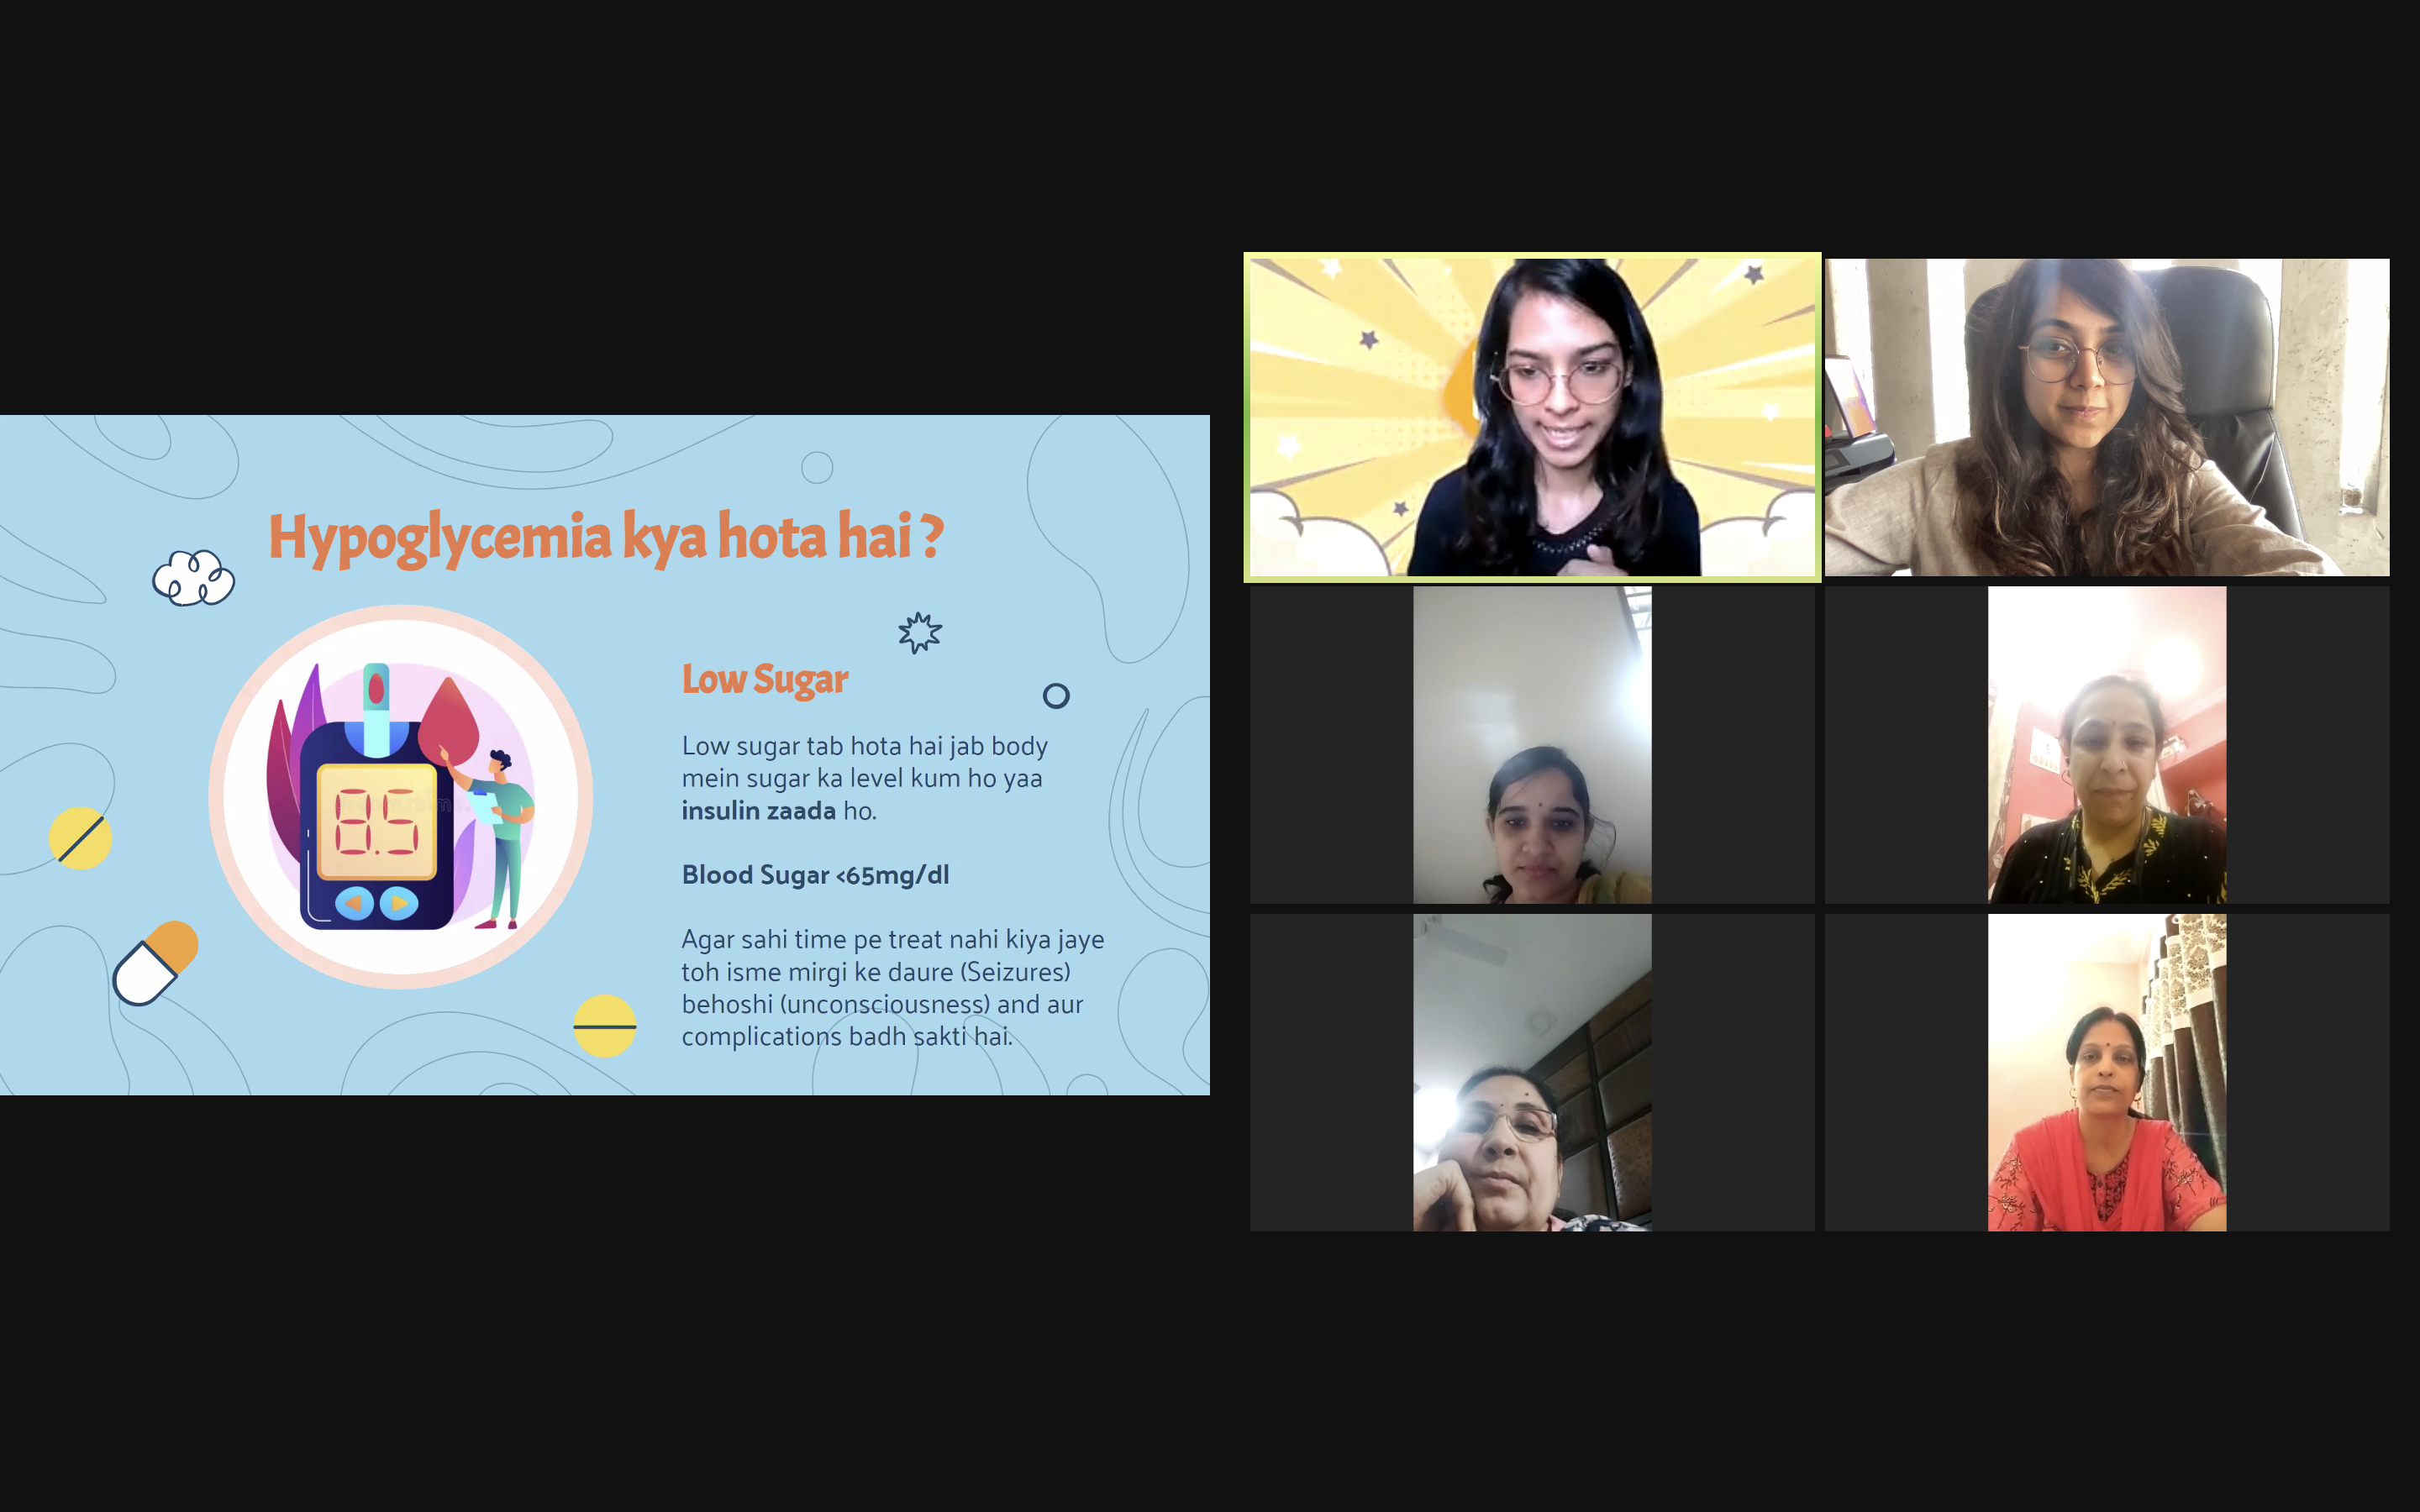 Screenshot taken of a workshop on zoom where 6 people's faces are showing on camera, all looking at a blue slide with information about hypoglycaemia.